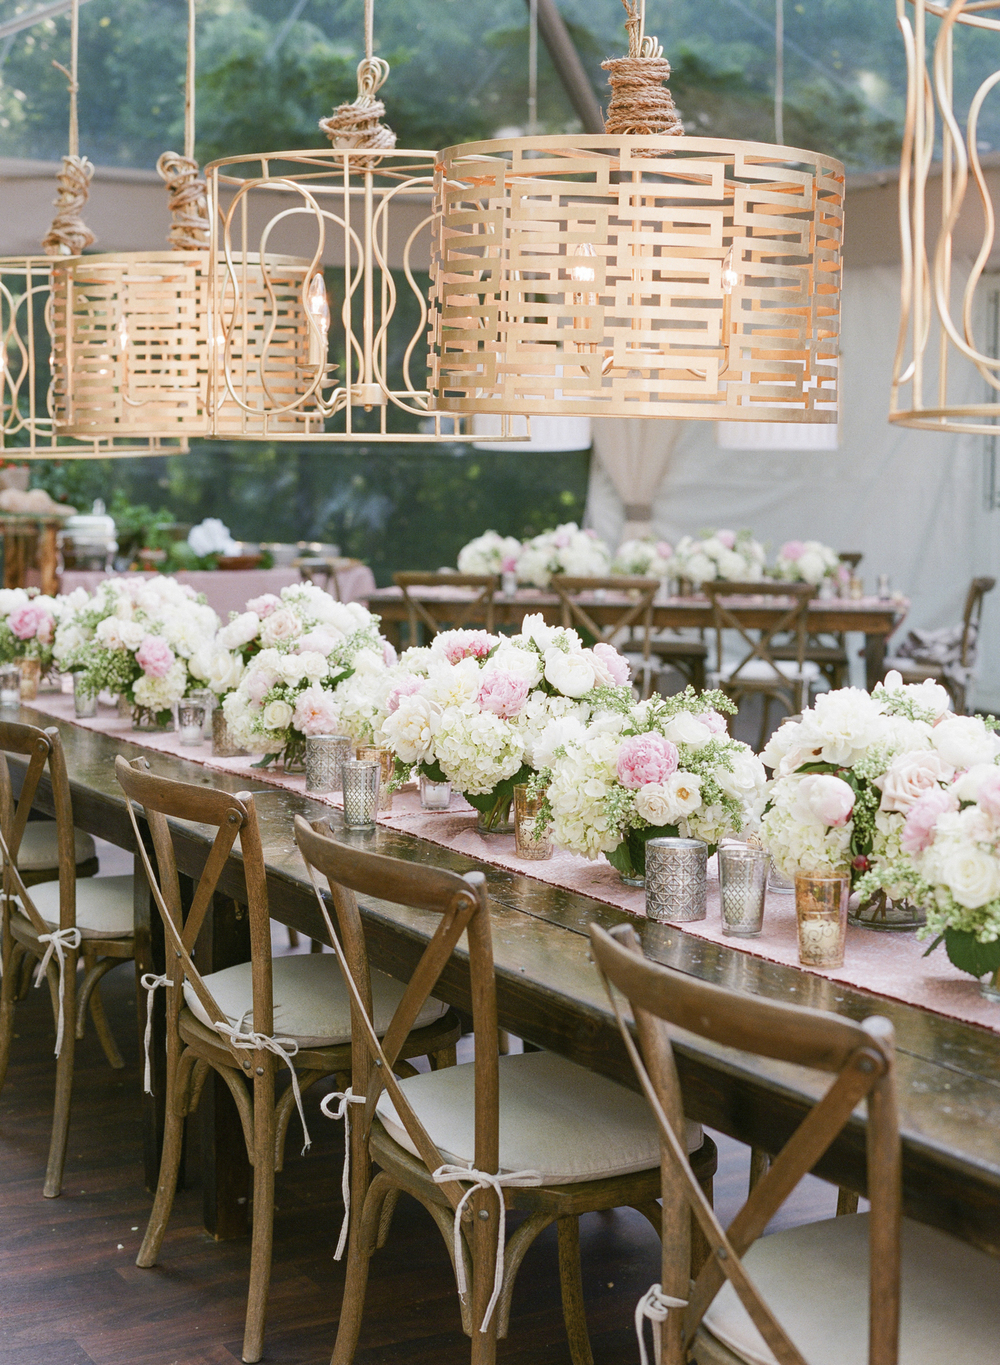 south_carolina_farm_wedding_rustic_chic_surprise_secret_luxe_wedding_bachelorette_emily_maynard_real_weddings-9.jpg